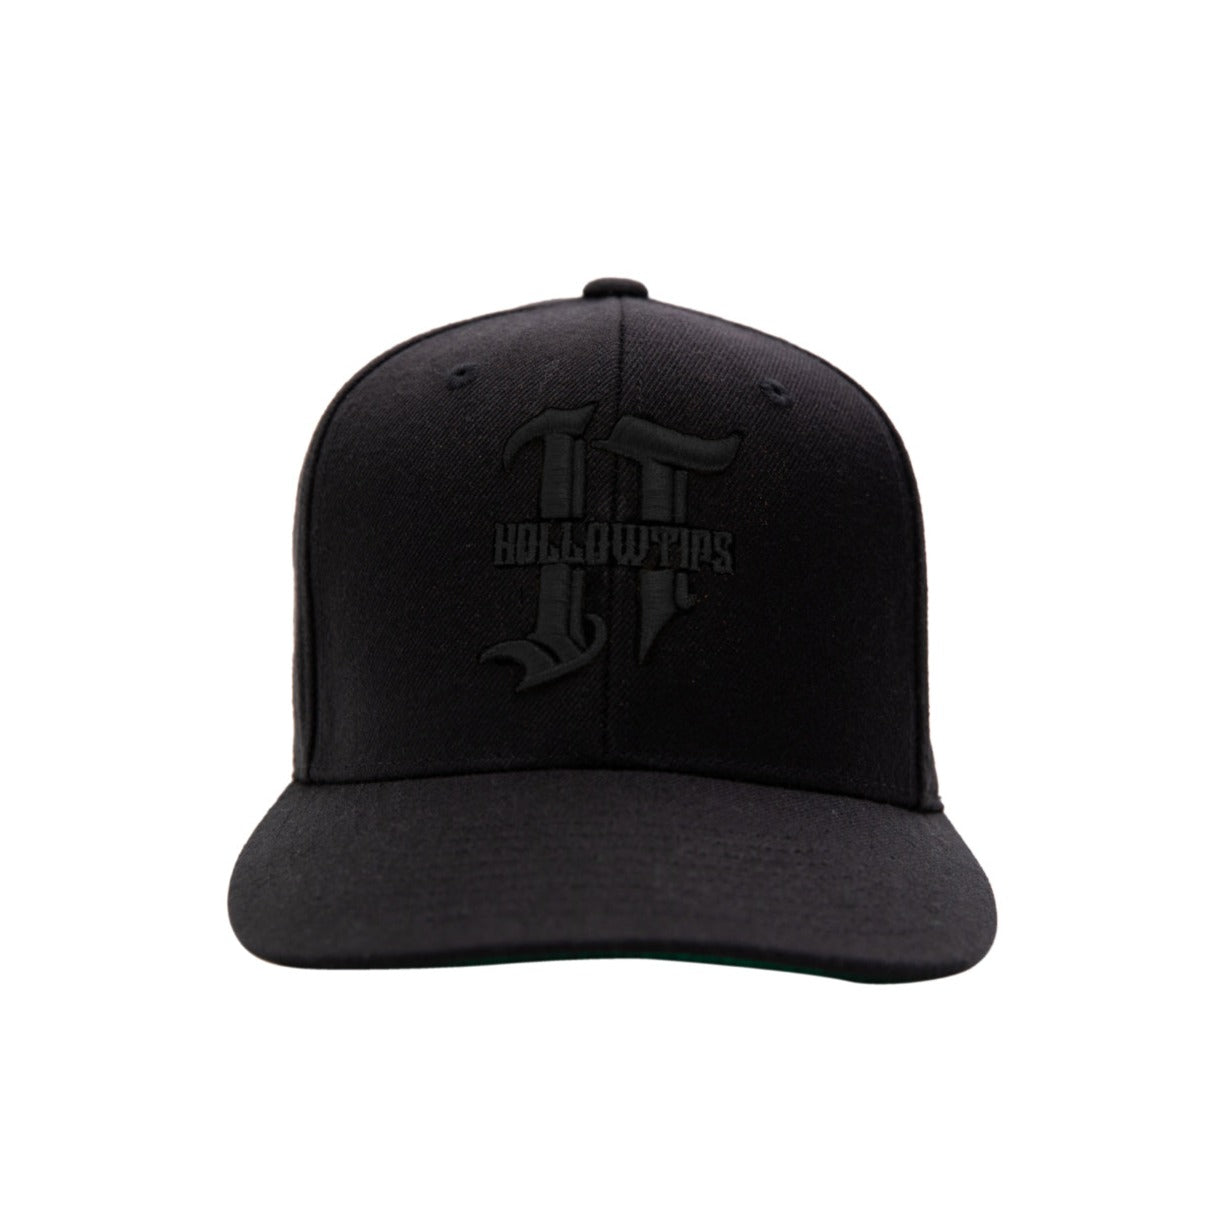 Logo Snapback - Black on Black